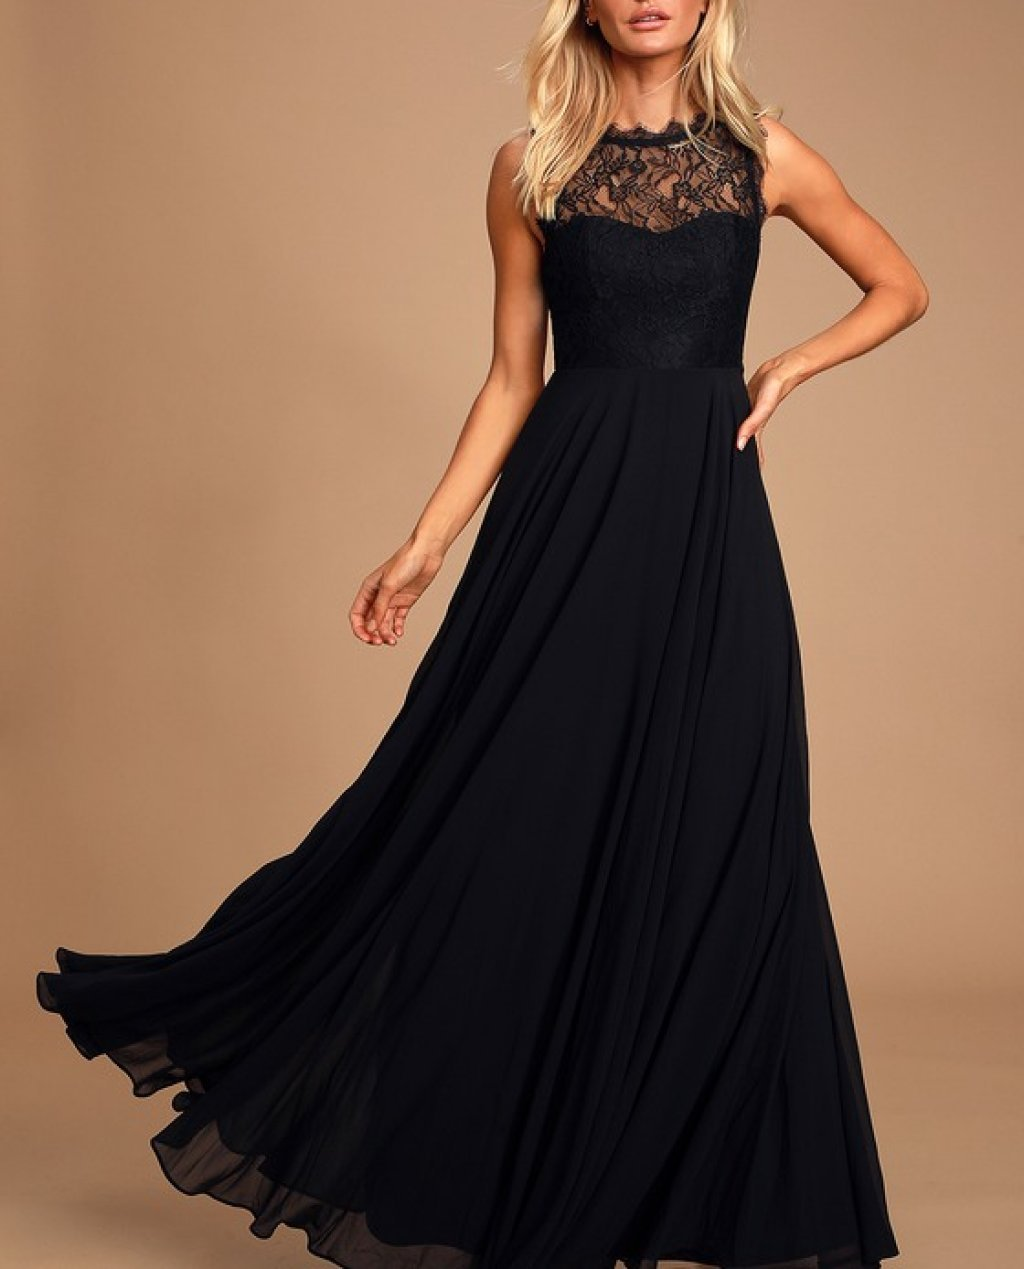 Divine Evening Black Lace Chiffon Maxi Dress